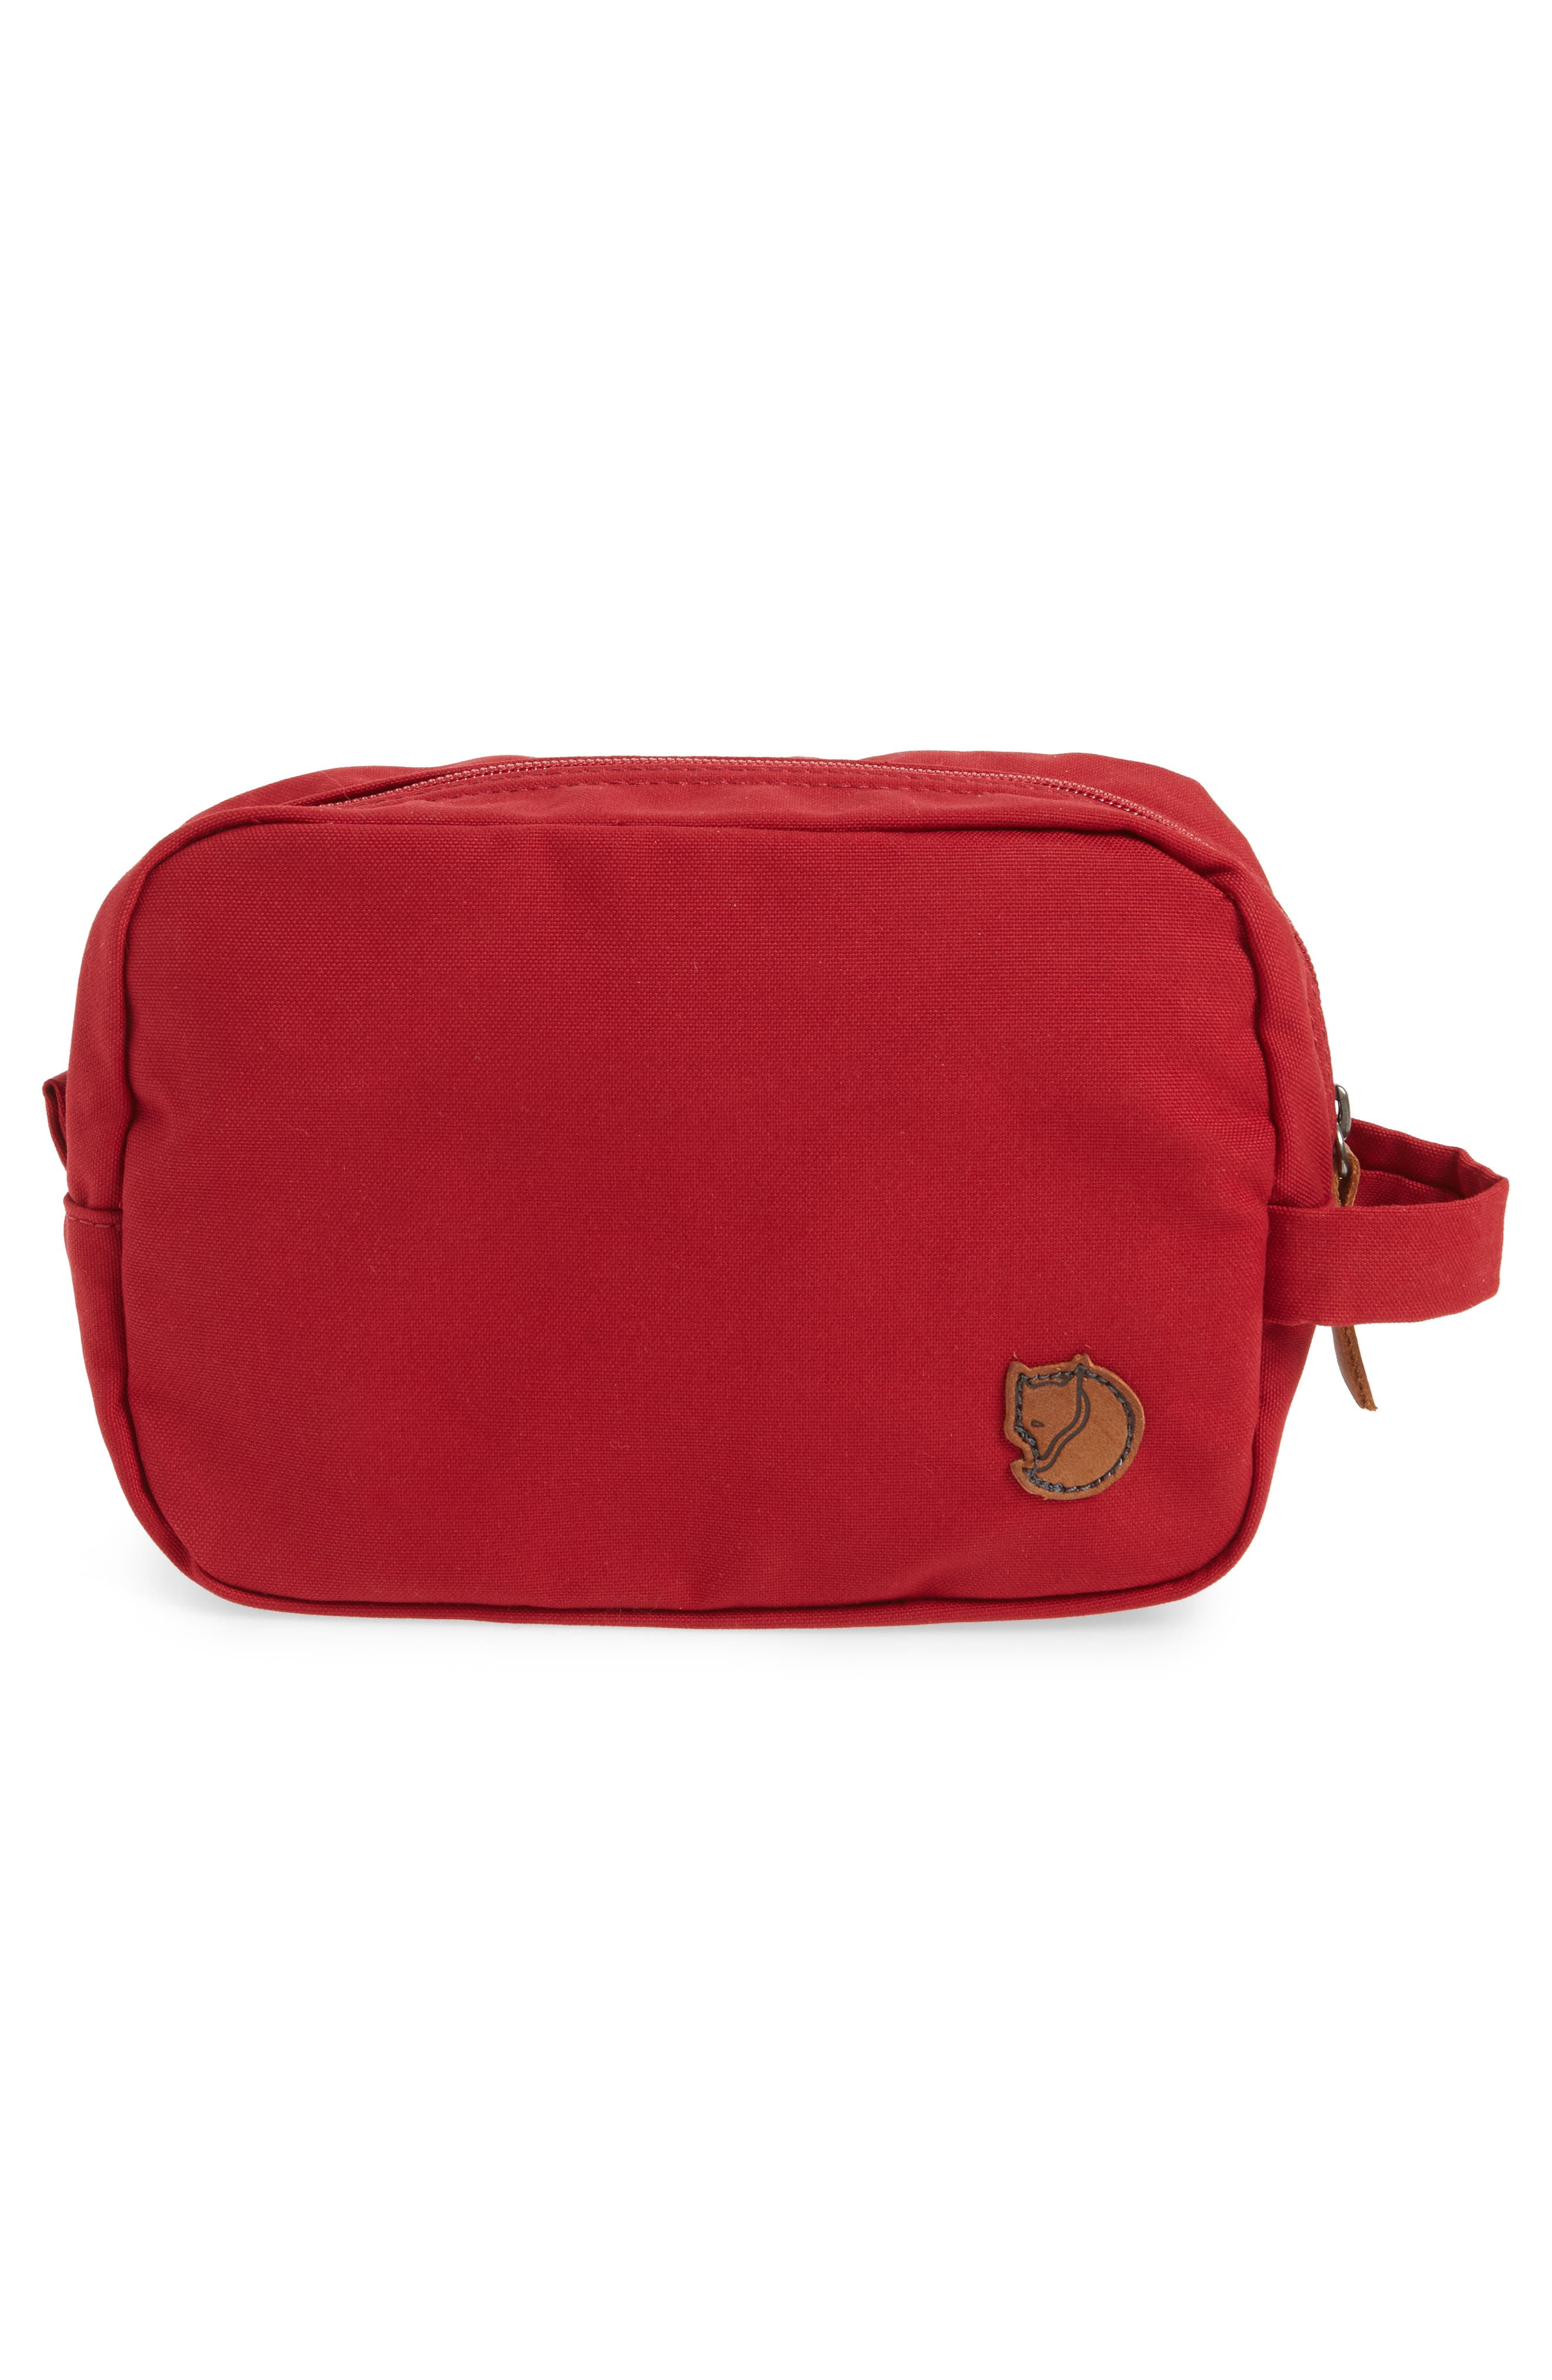 Water Resistant Gear Bag Pouch,                         Main,                         color, Redwood